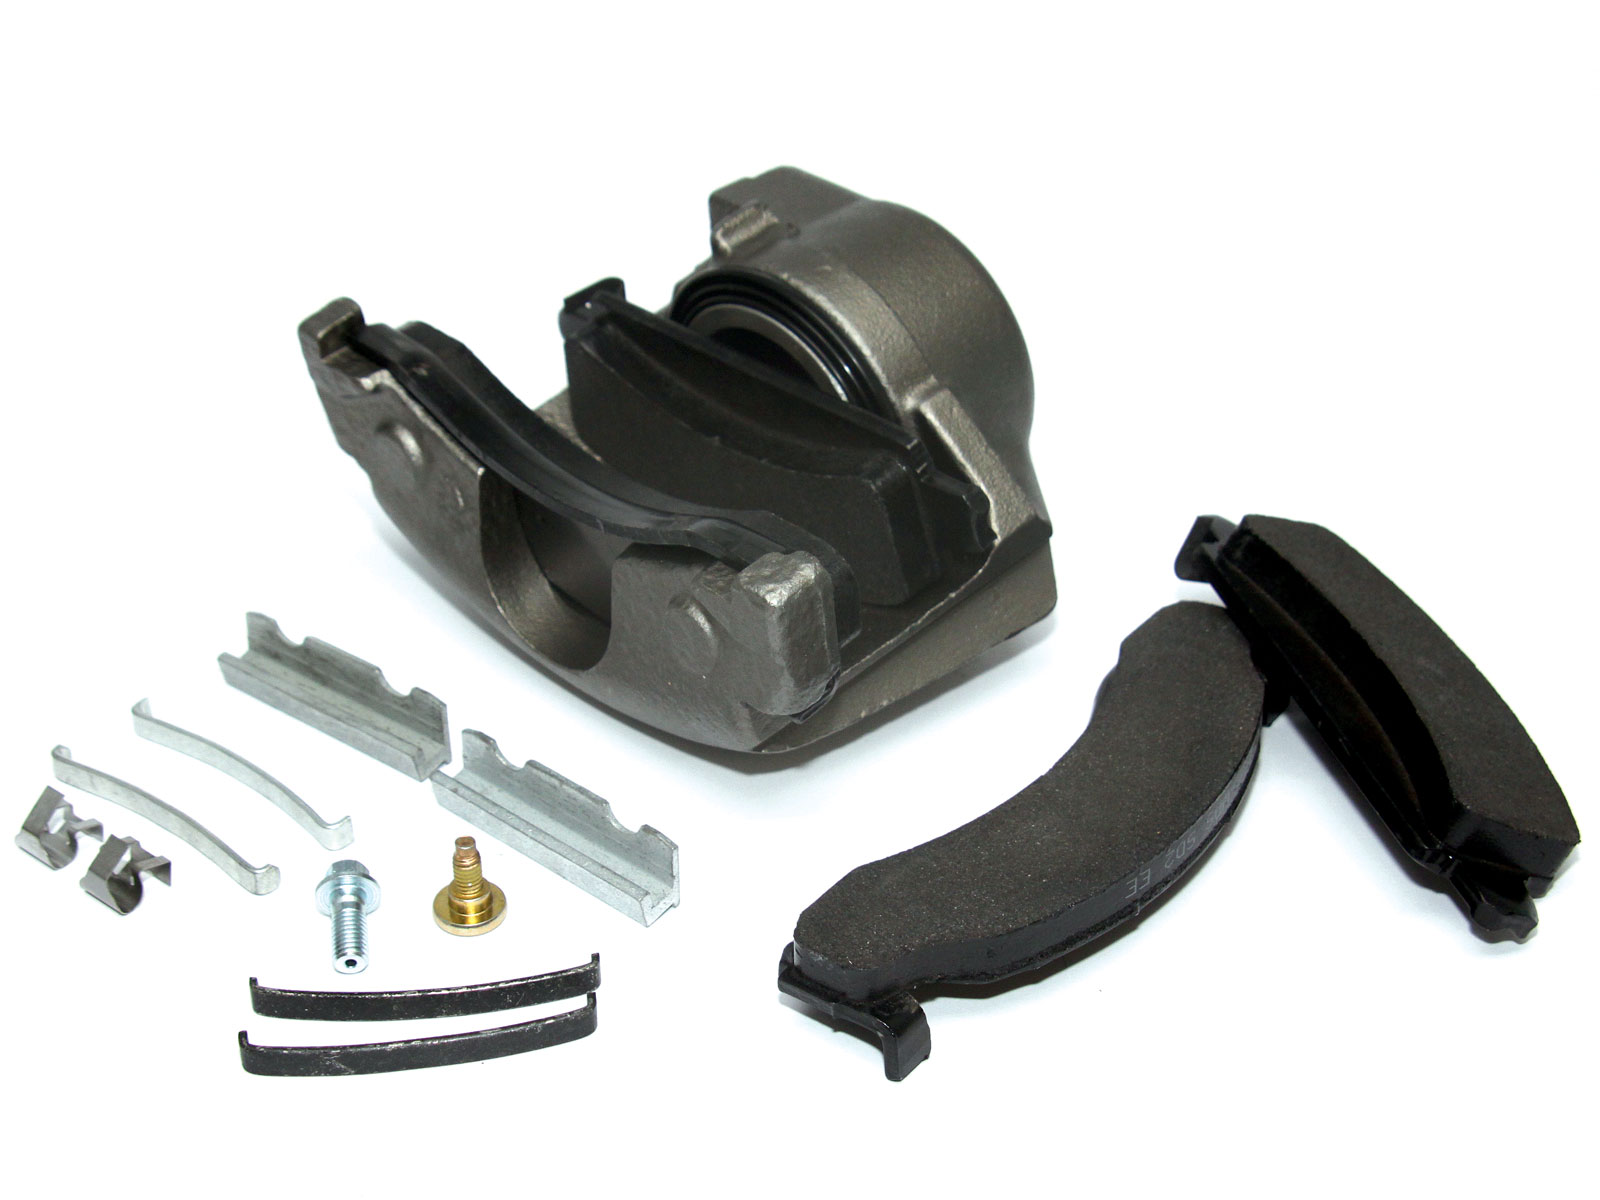 ORD does not include new brake rotors or calipers with their kit because these items are readily available at just about any local auto parts store or wrecking yard. Due to the high weight of these items, it simply does not make sense to ship them by mail. This helps keep the cost of the conversion down. To complete the conversion, the customer must source a pair of brake rotors from a '73-'87 GM 3/4-ton front axle and calipers from a '73-'87 1/2- or 3/4-ton front axle. We purchased this set recently from Boyce Equipment in Ogden, Utah.